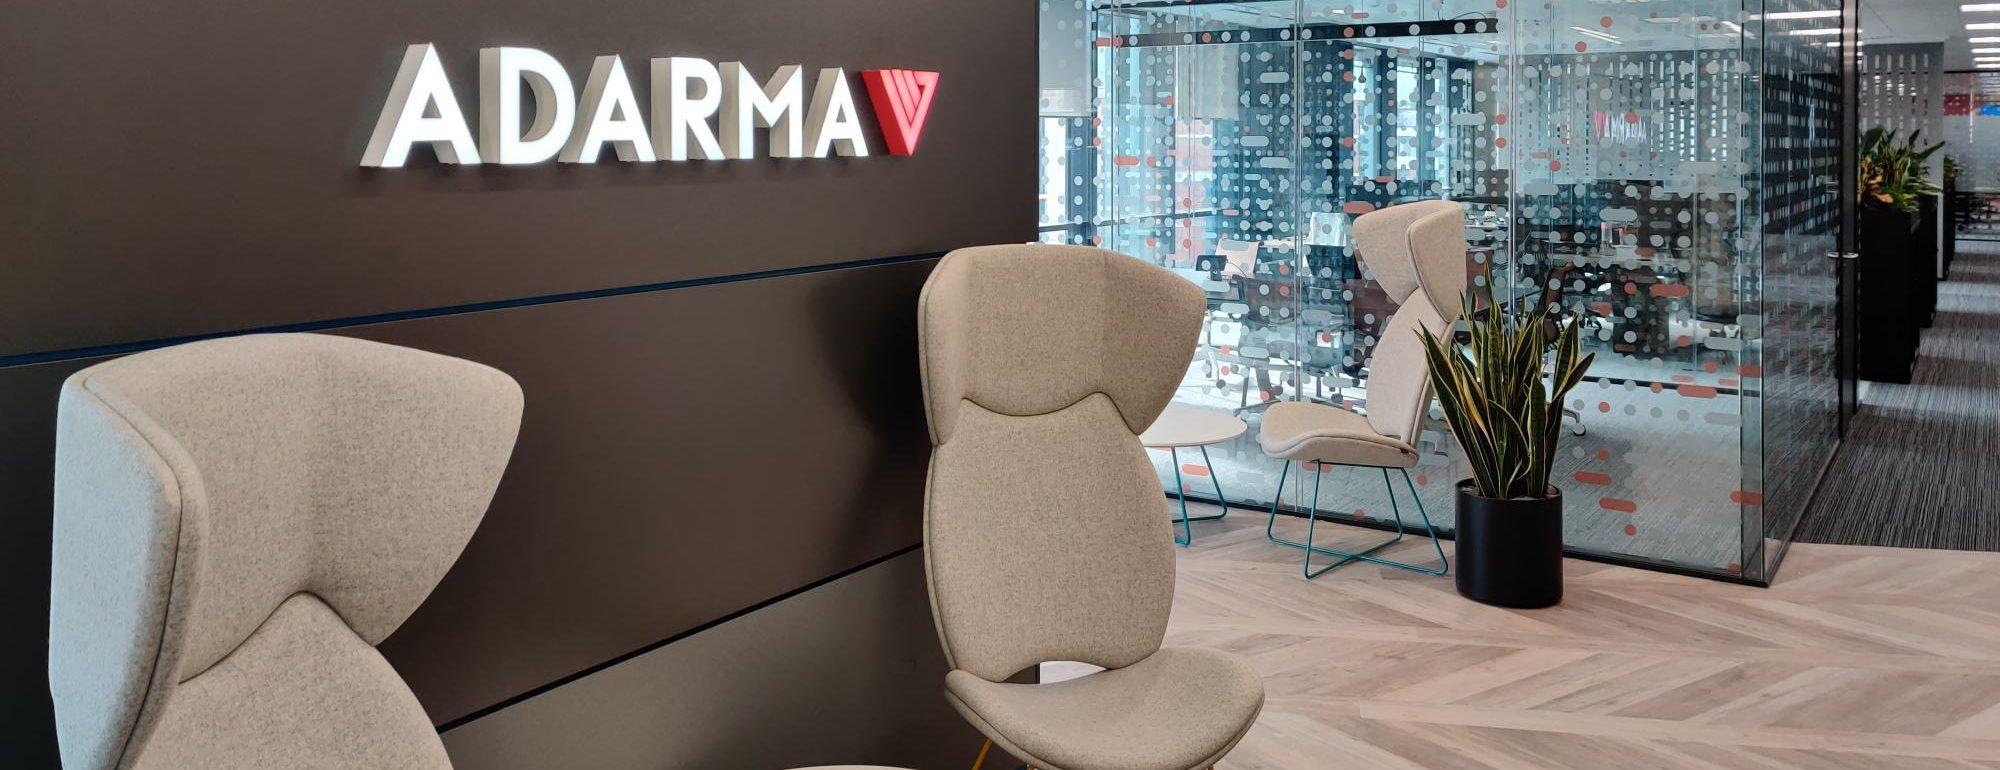 Security Leaders Spin Out Of ECS Group To Form Adarma image